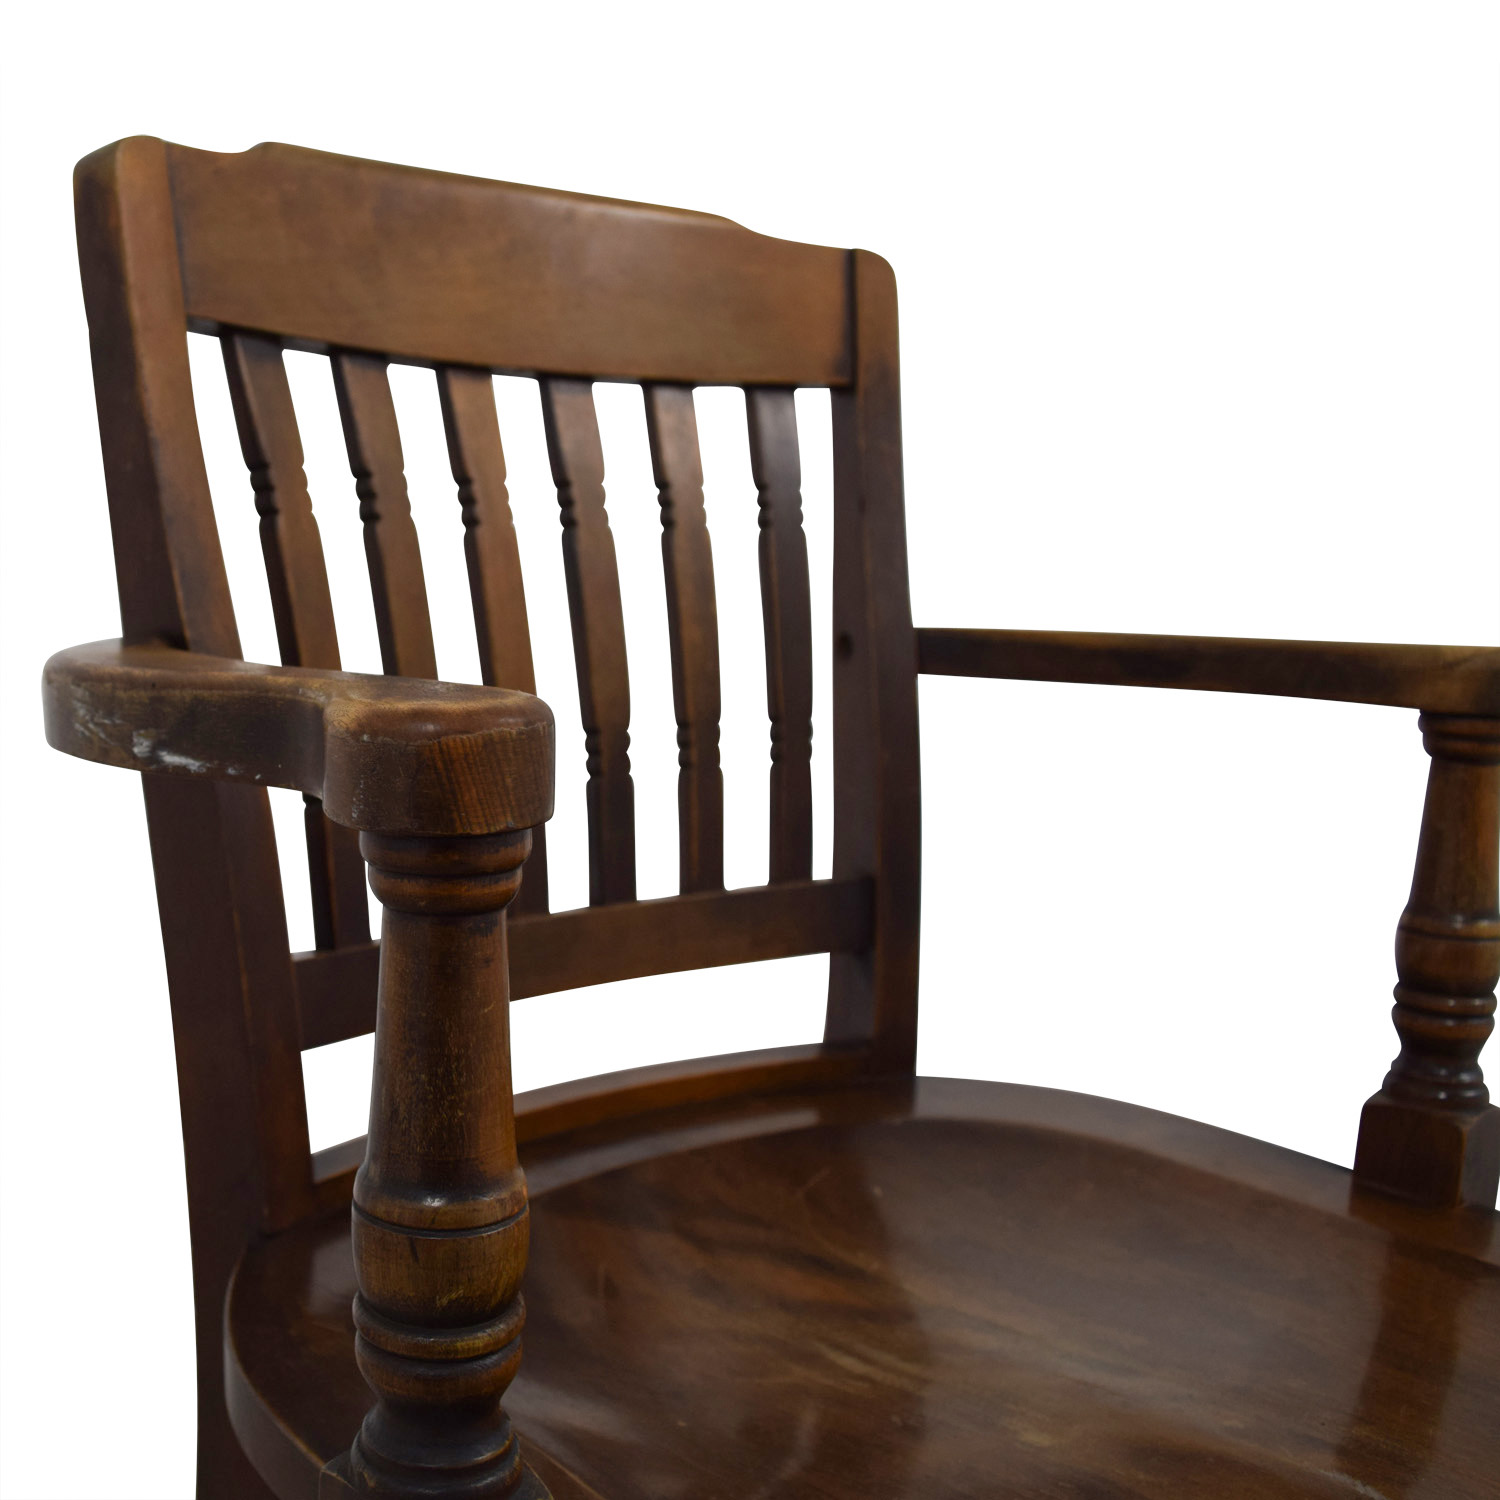 buy Antique Wood Spindel Chair